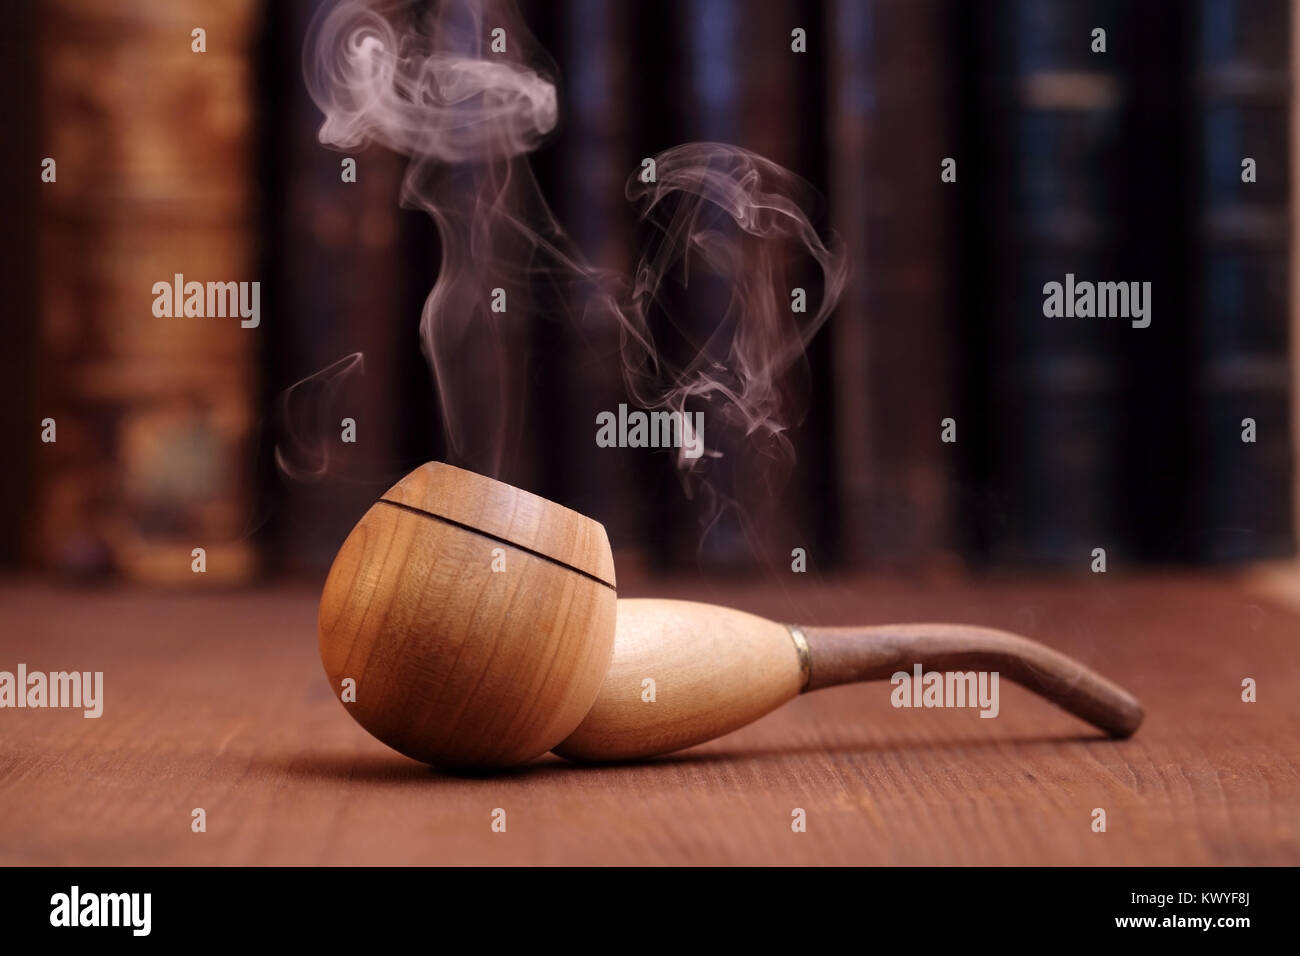 Smoking tobacco pipe on wooden background with old books - Stock Image